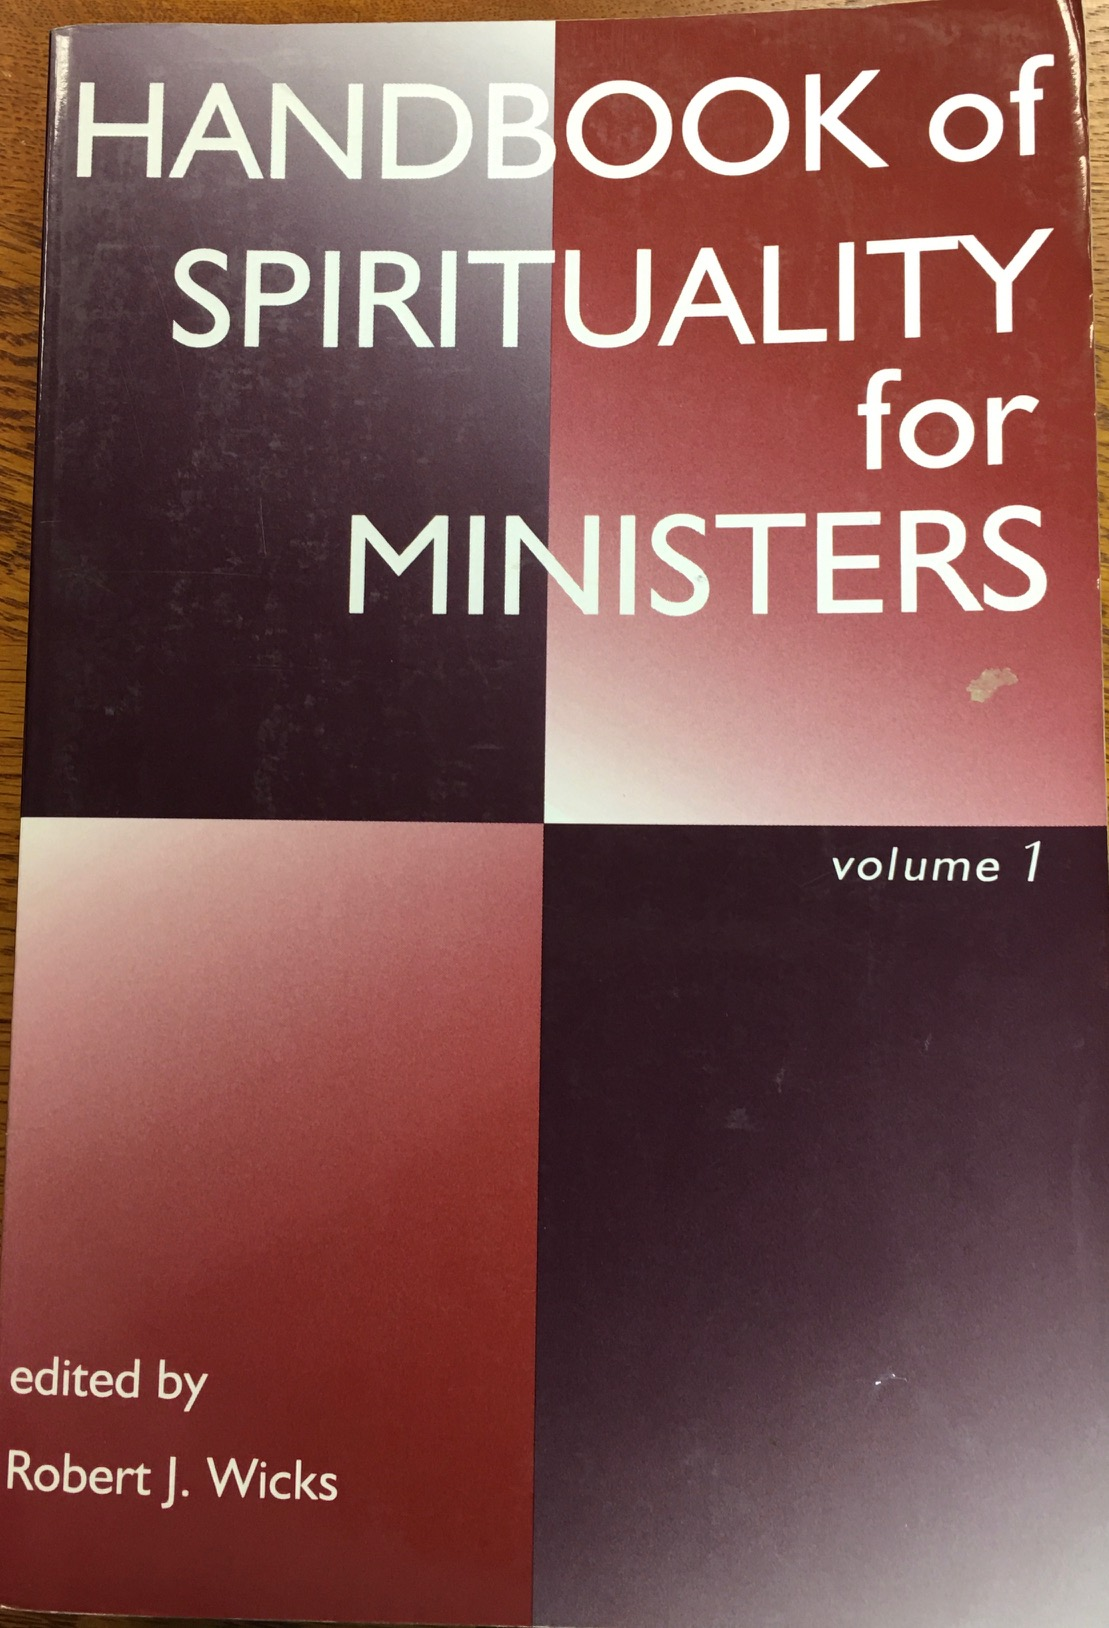 Image for Handbook of Spirituality for Ministers - Volume 1